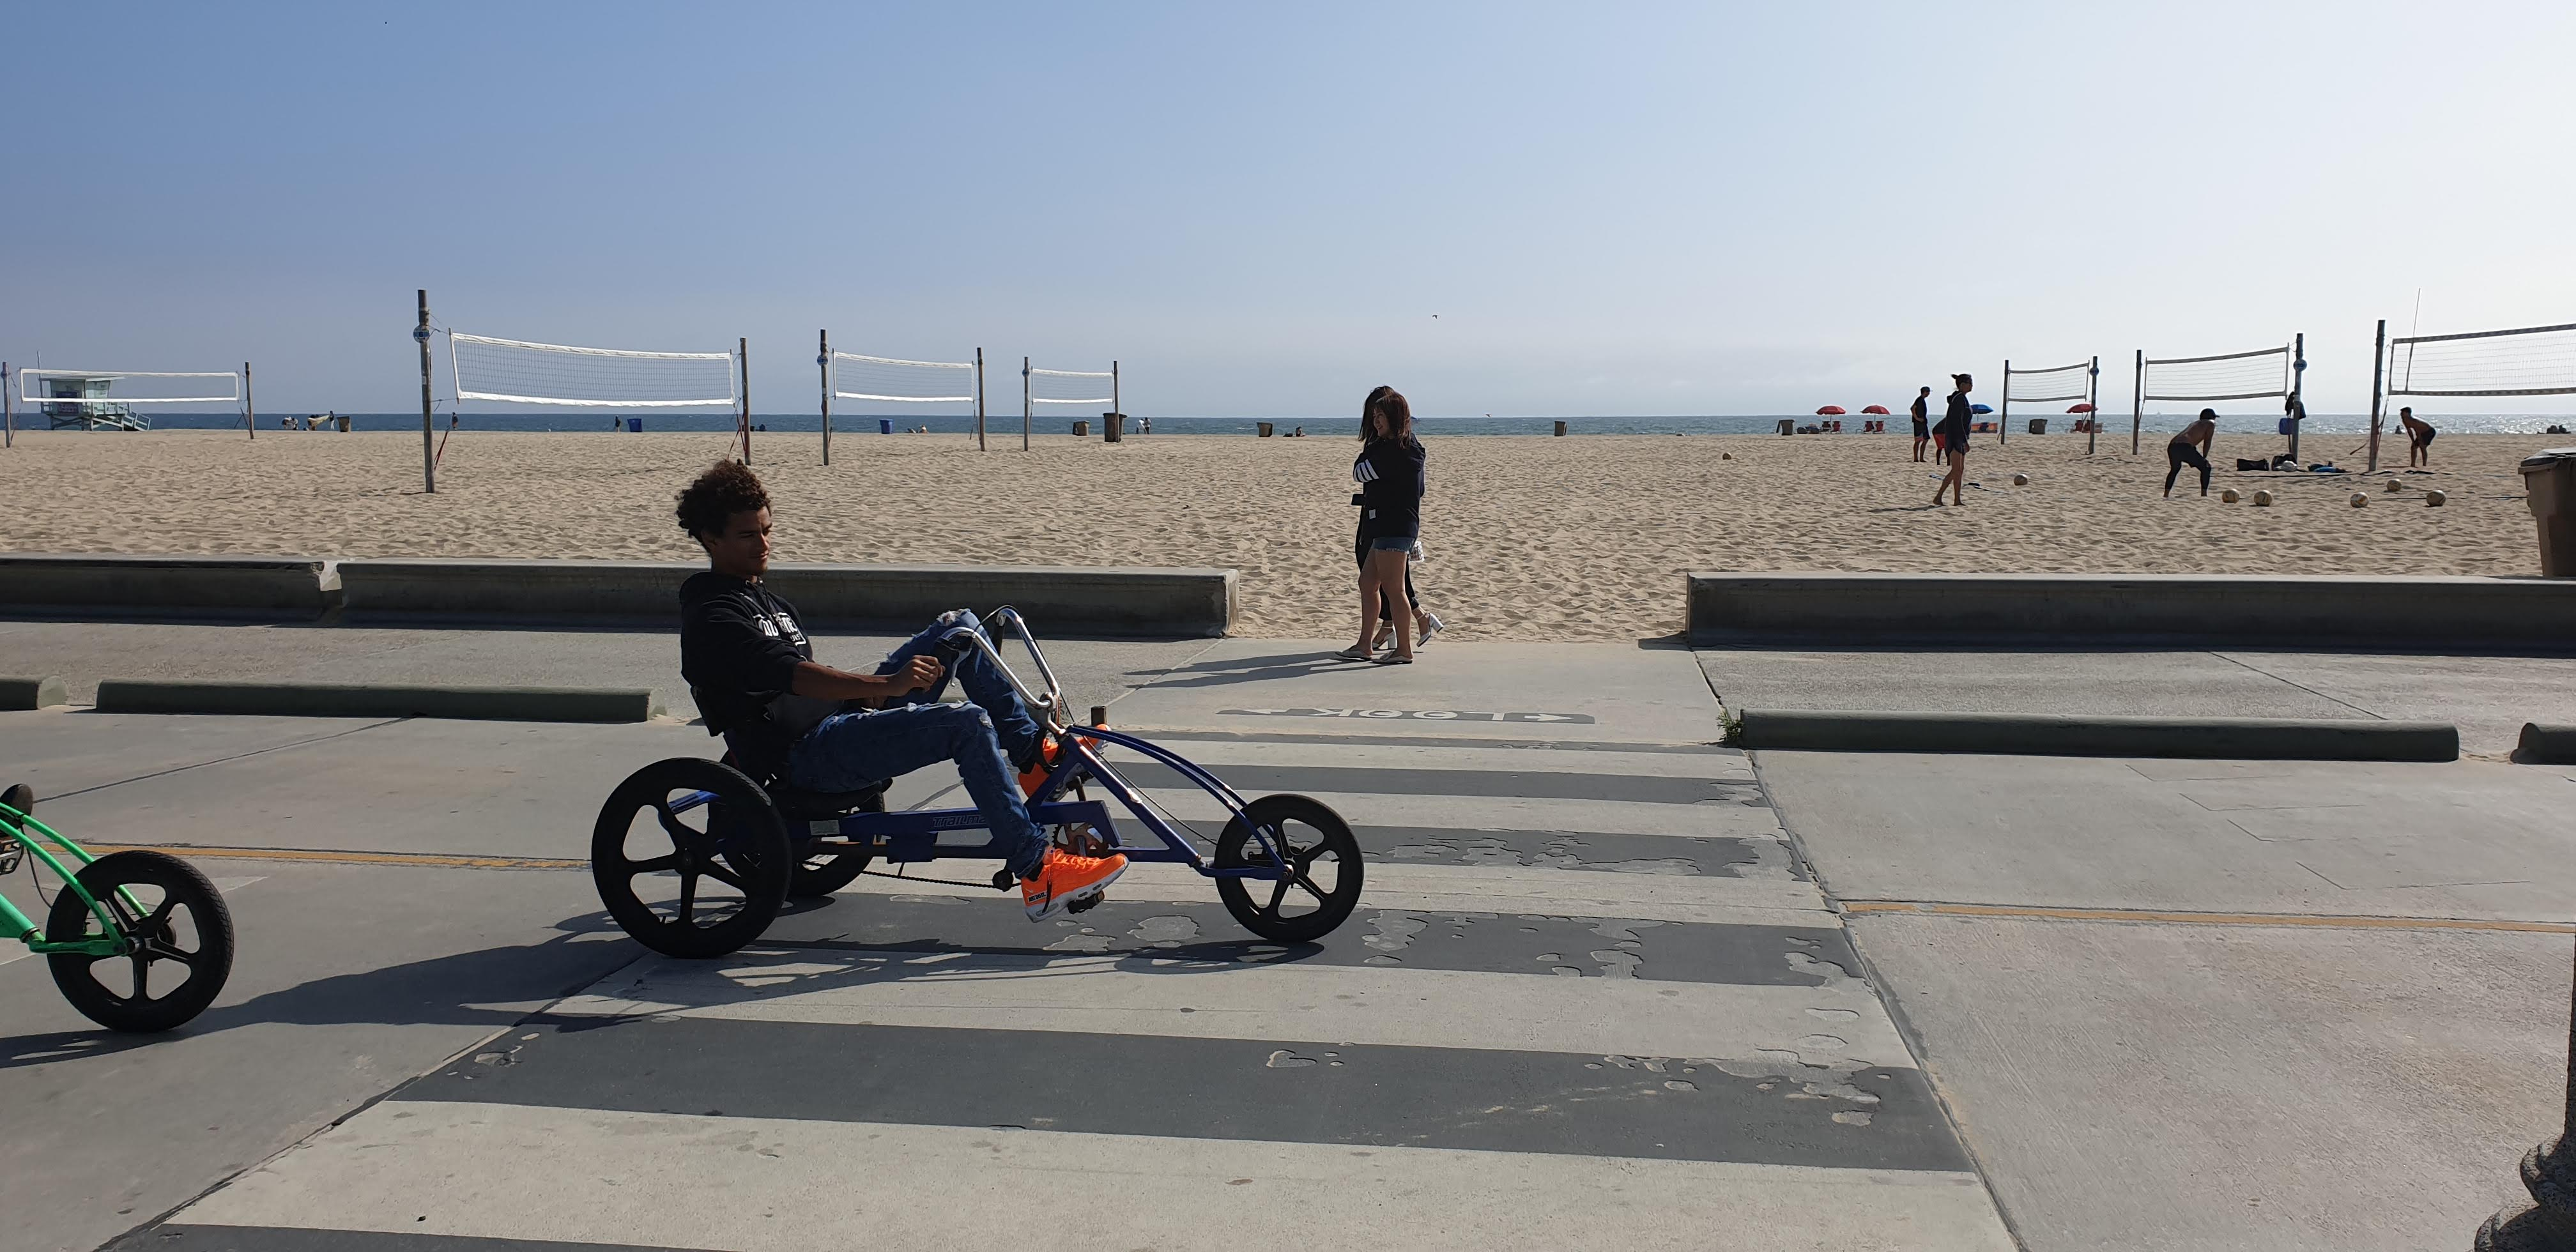 Ride a bike along the beach in Santa Monica California